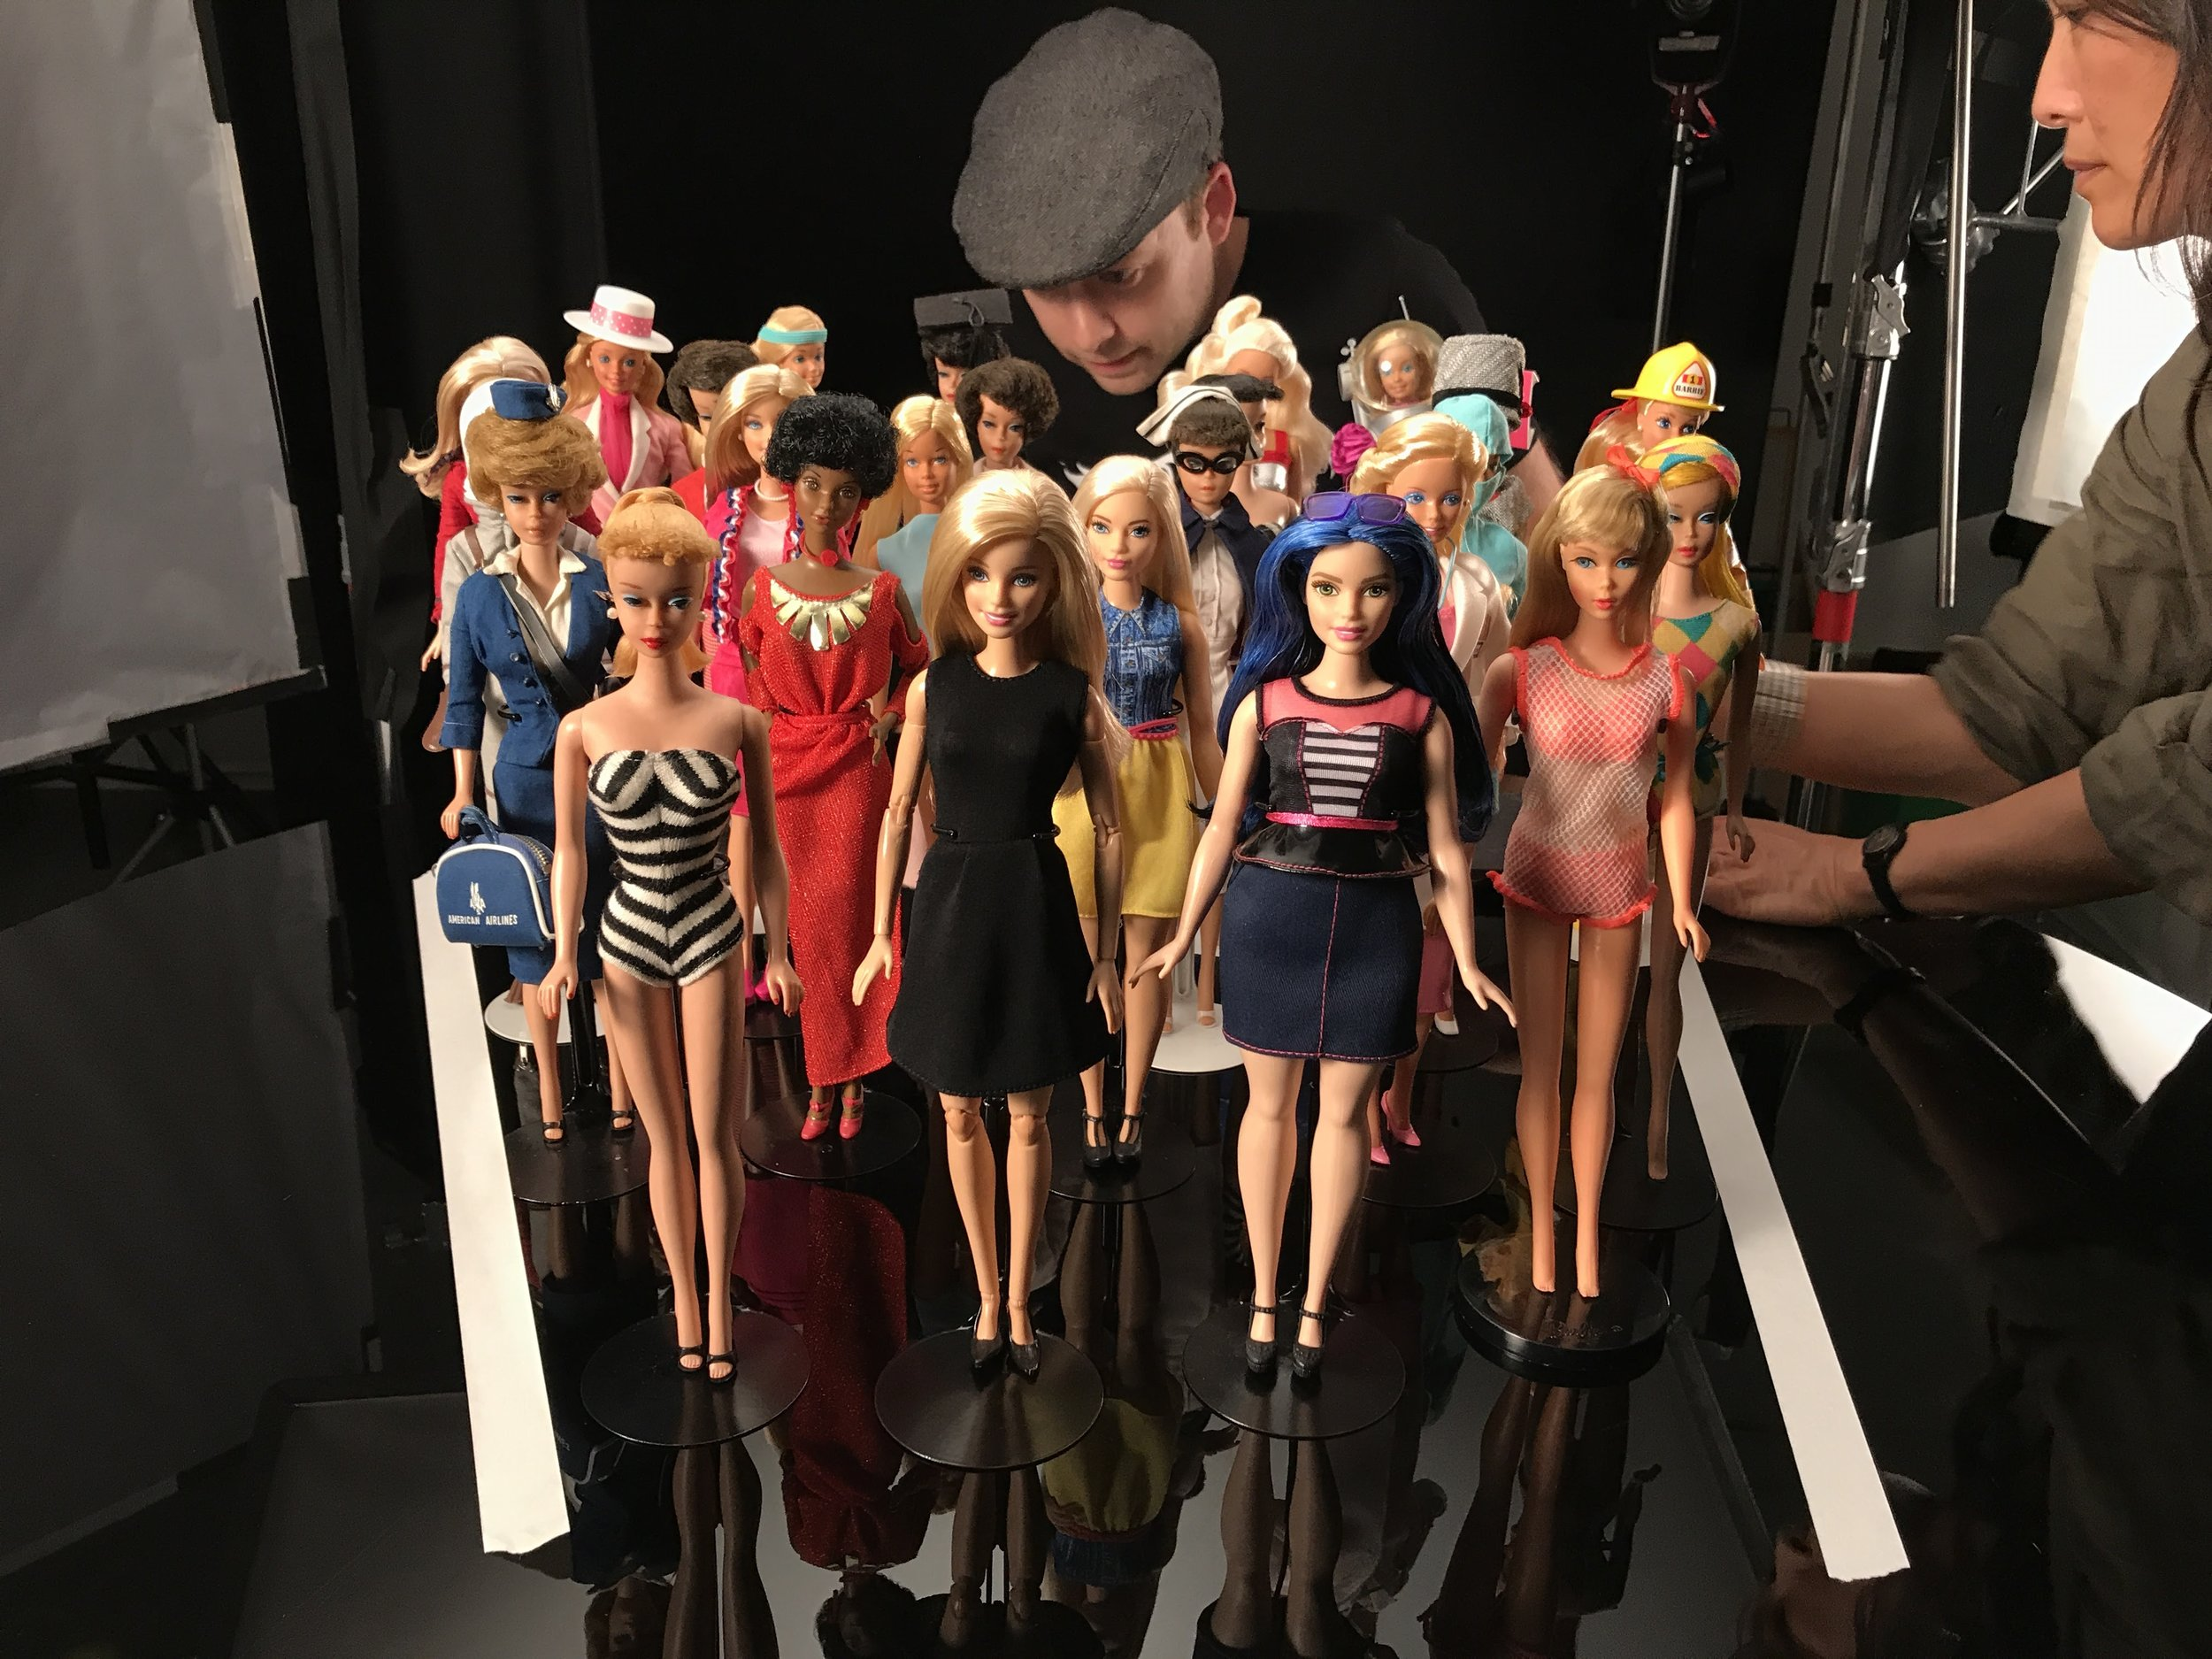 A collection of Barbie dolls from the original doll to the modern dolls.